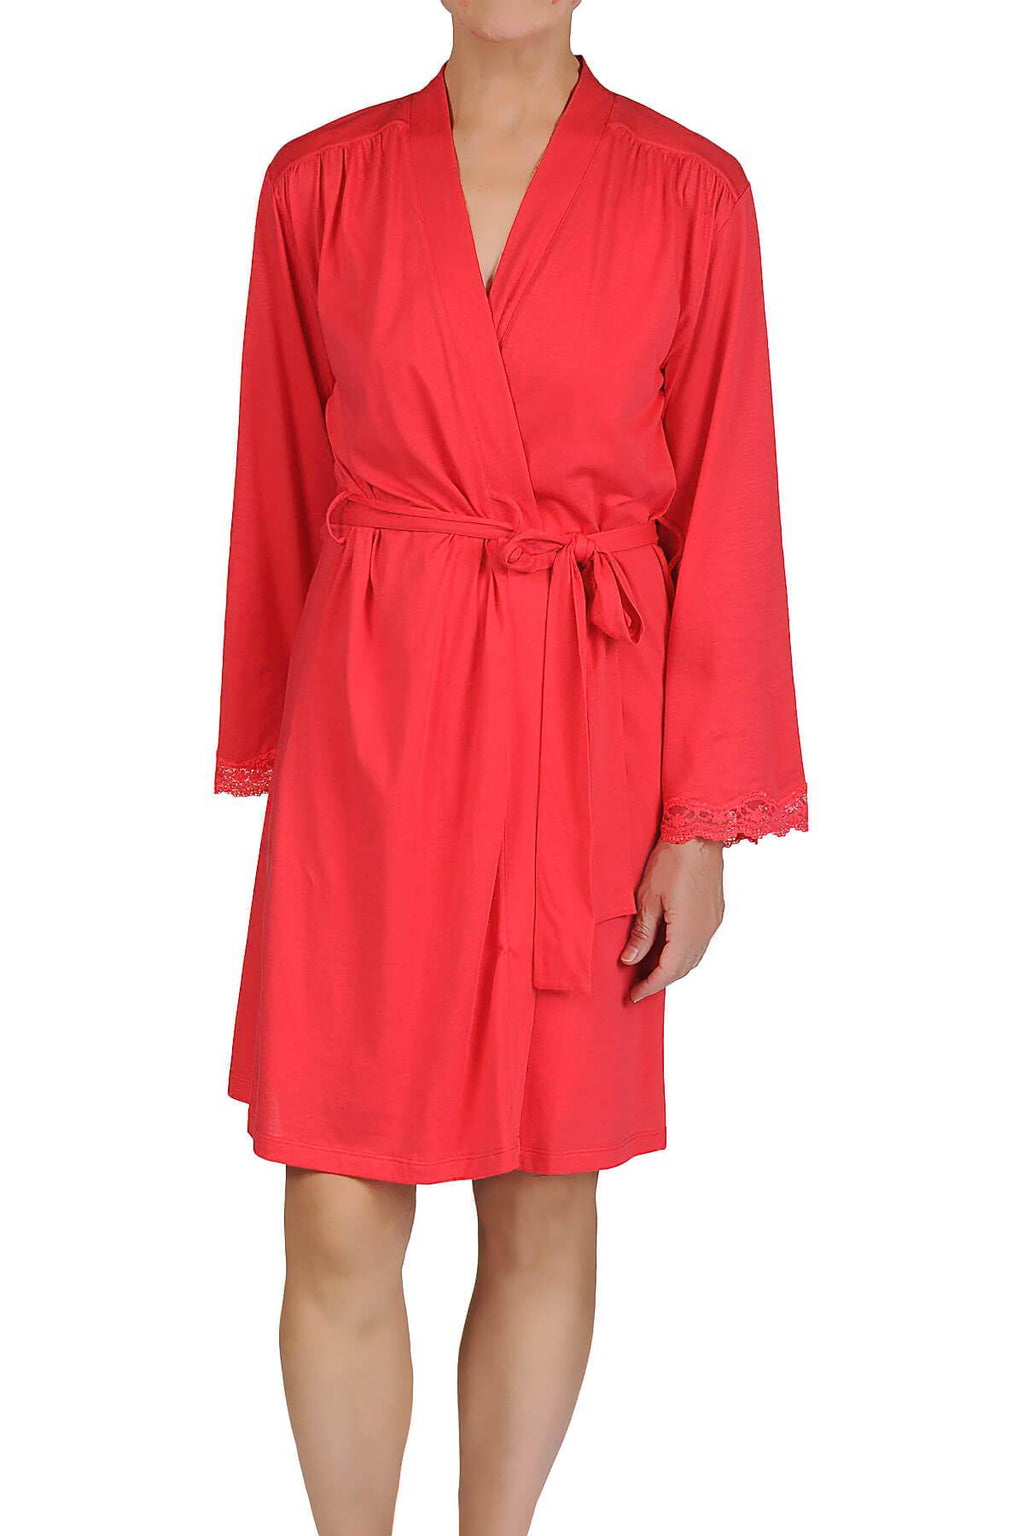 Carman Short Robe - Coral Red Mystique Intimates